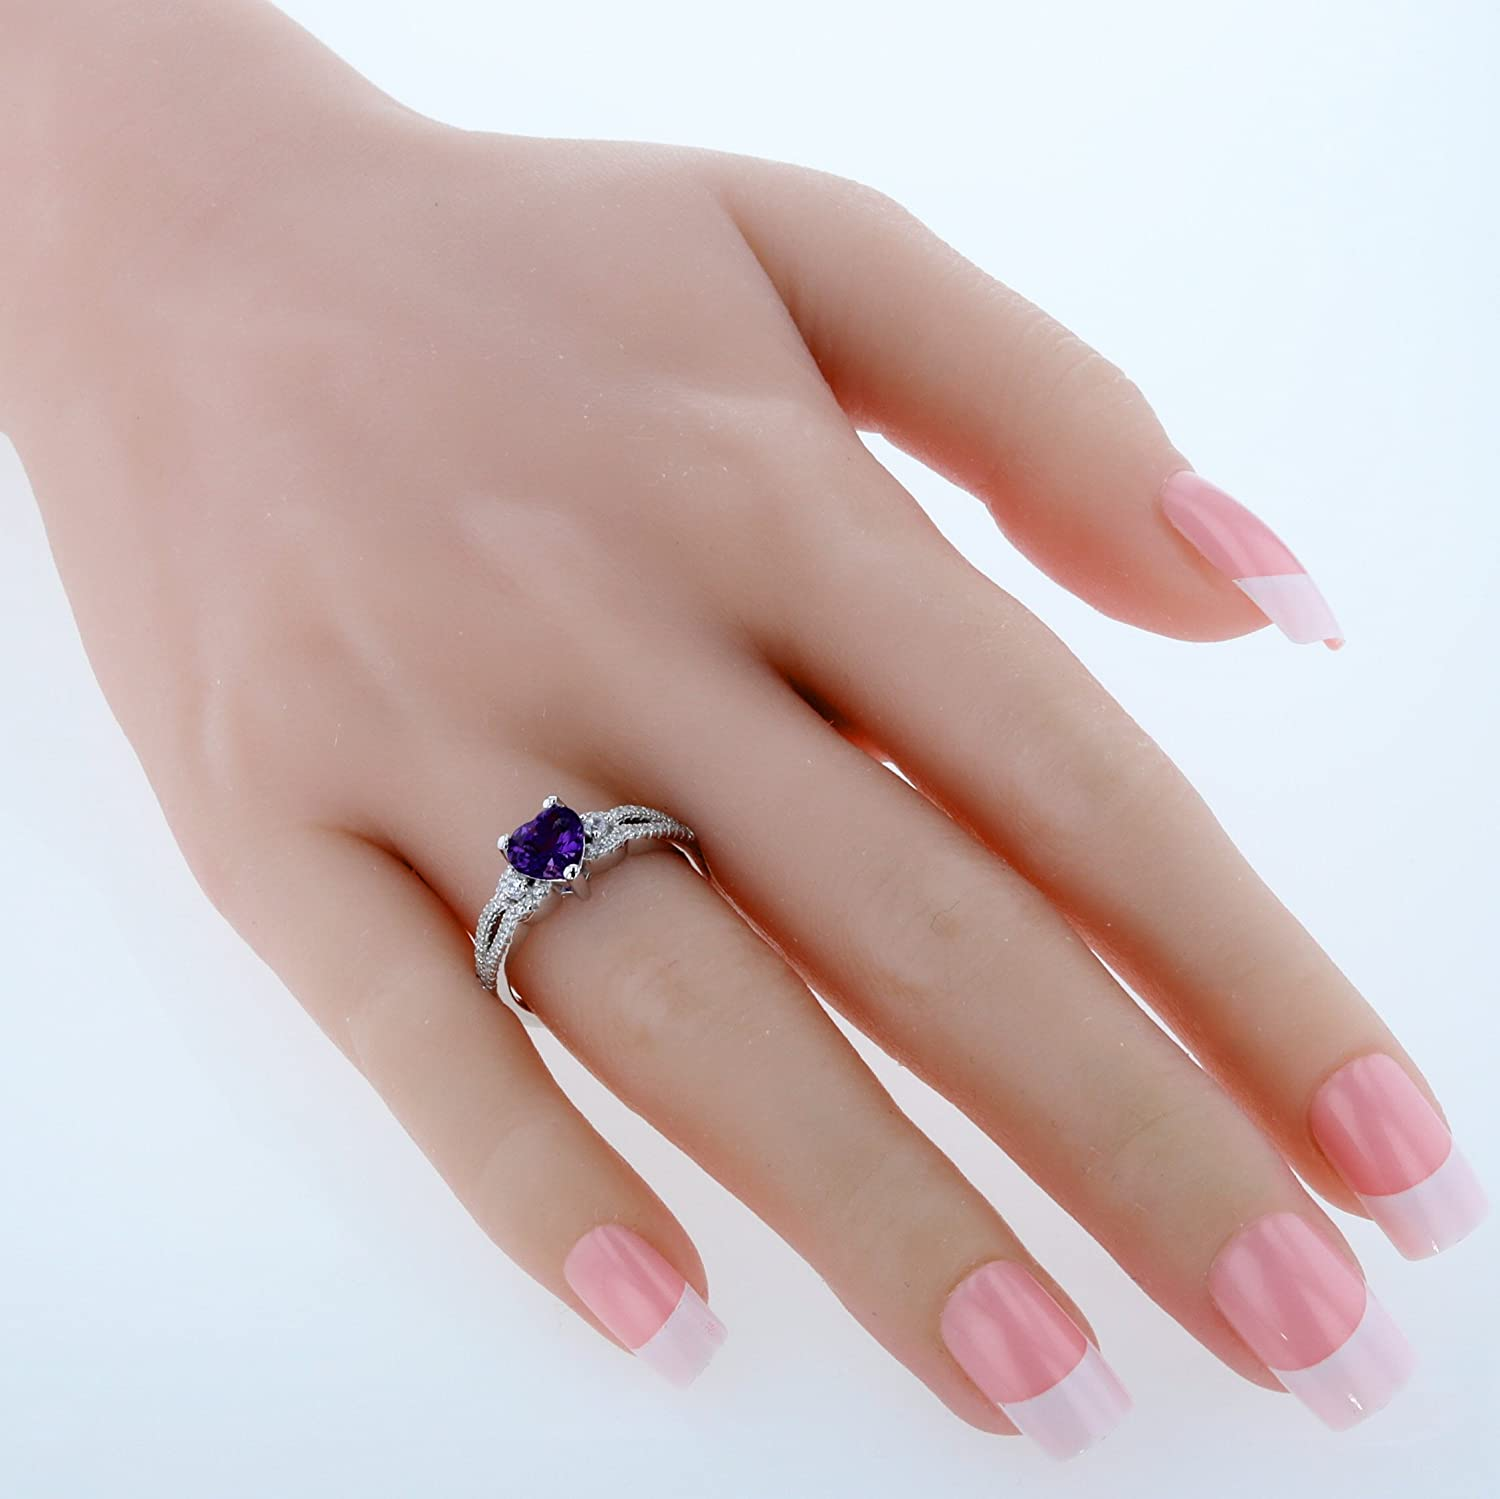 Amazon.com: Sterling Silver Heart Soulmate Ring Sizes 5 to 9 in ...